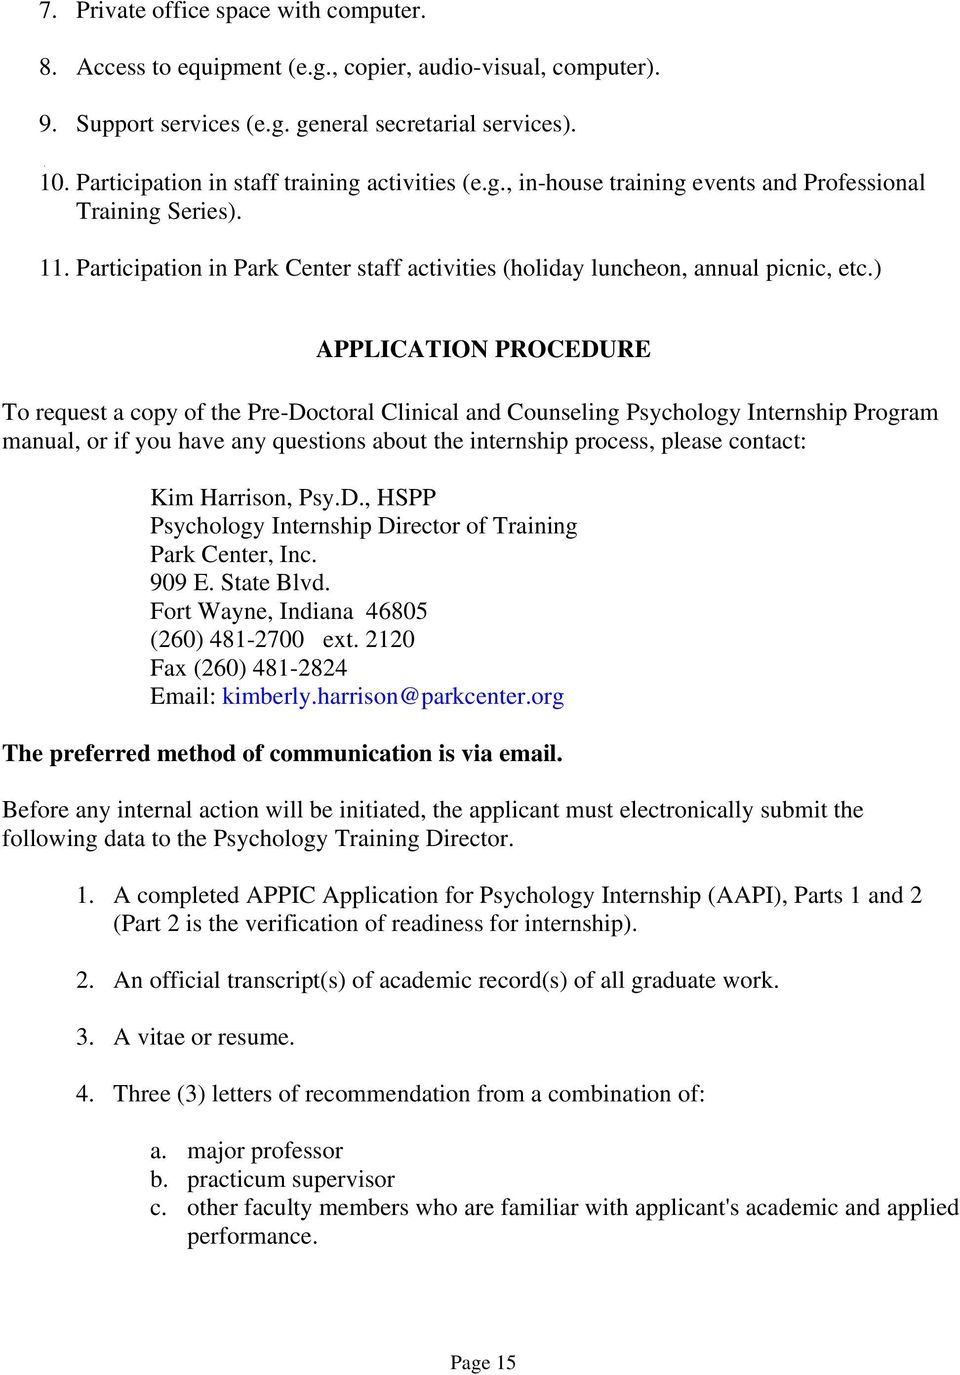 ) APPLICATION PROCEDURE To request a copy of the Pre-Doctoral Clinical and Counseling Psychology Internship Program manual, or if you have any questions about the internship process, please contact: